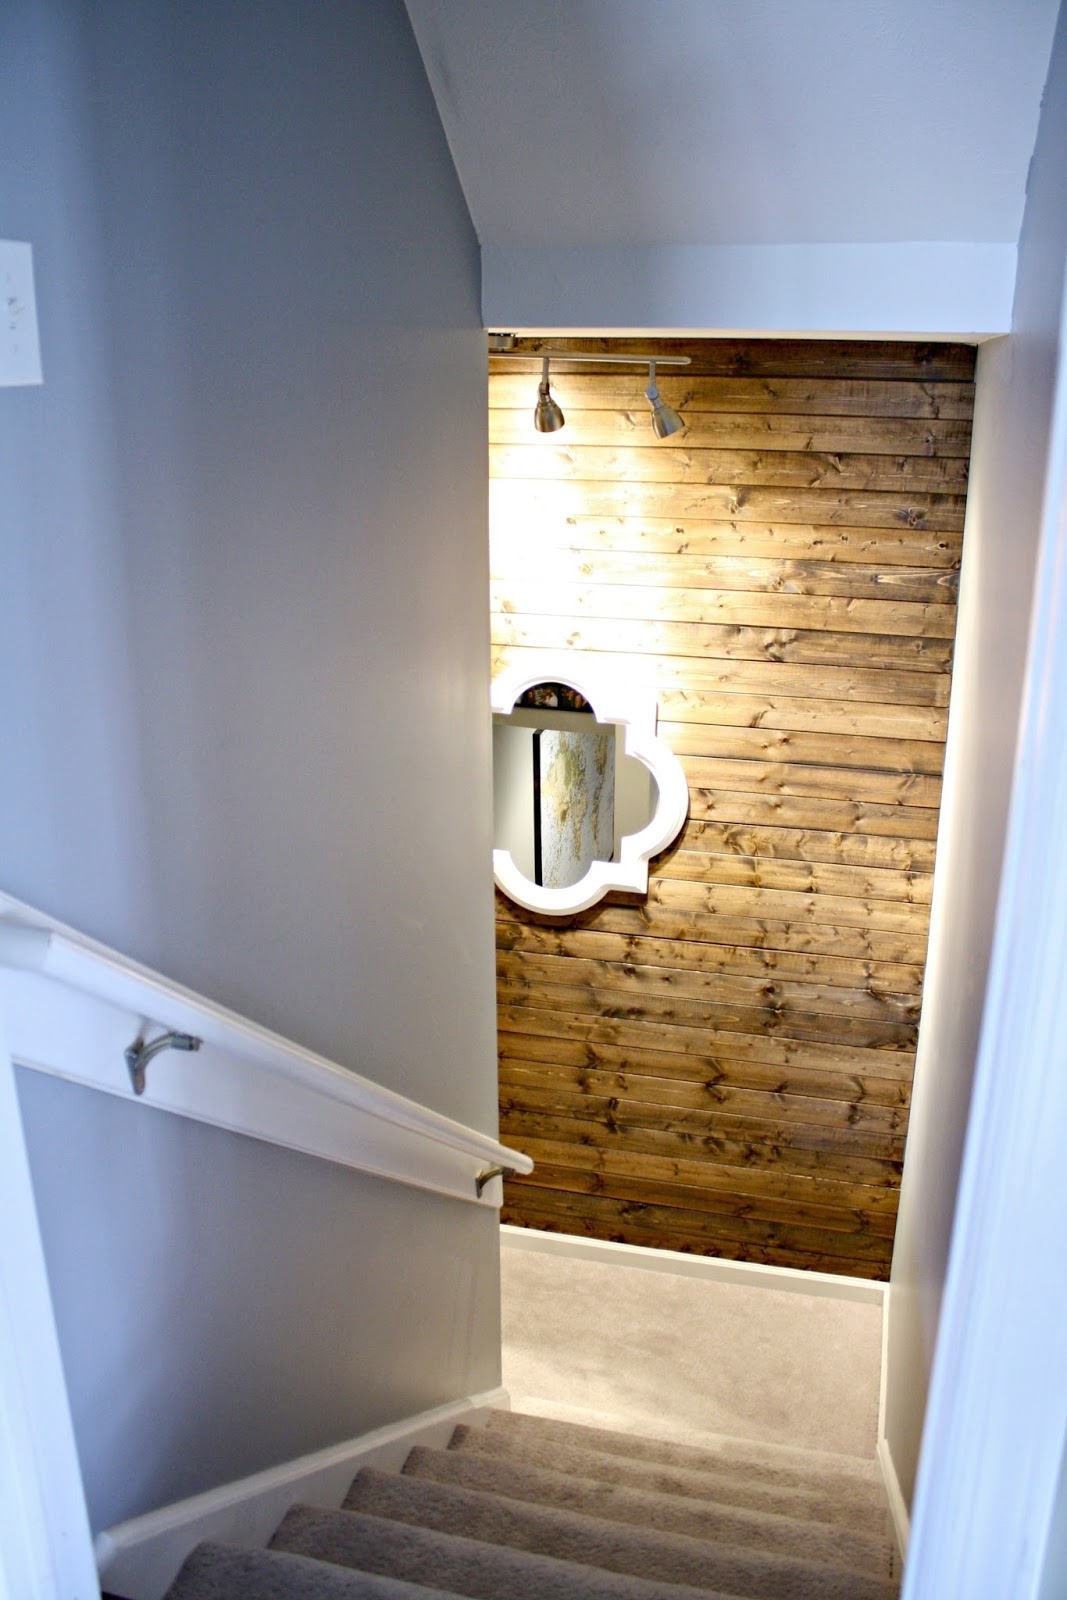 Basement Stair Landing Decorating: How To Add The Shiplap Look To Your Home (for A Lot Less